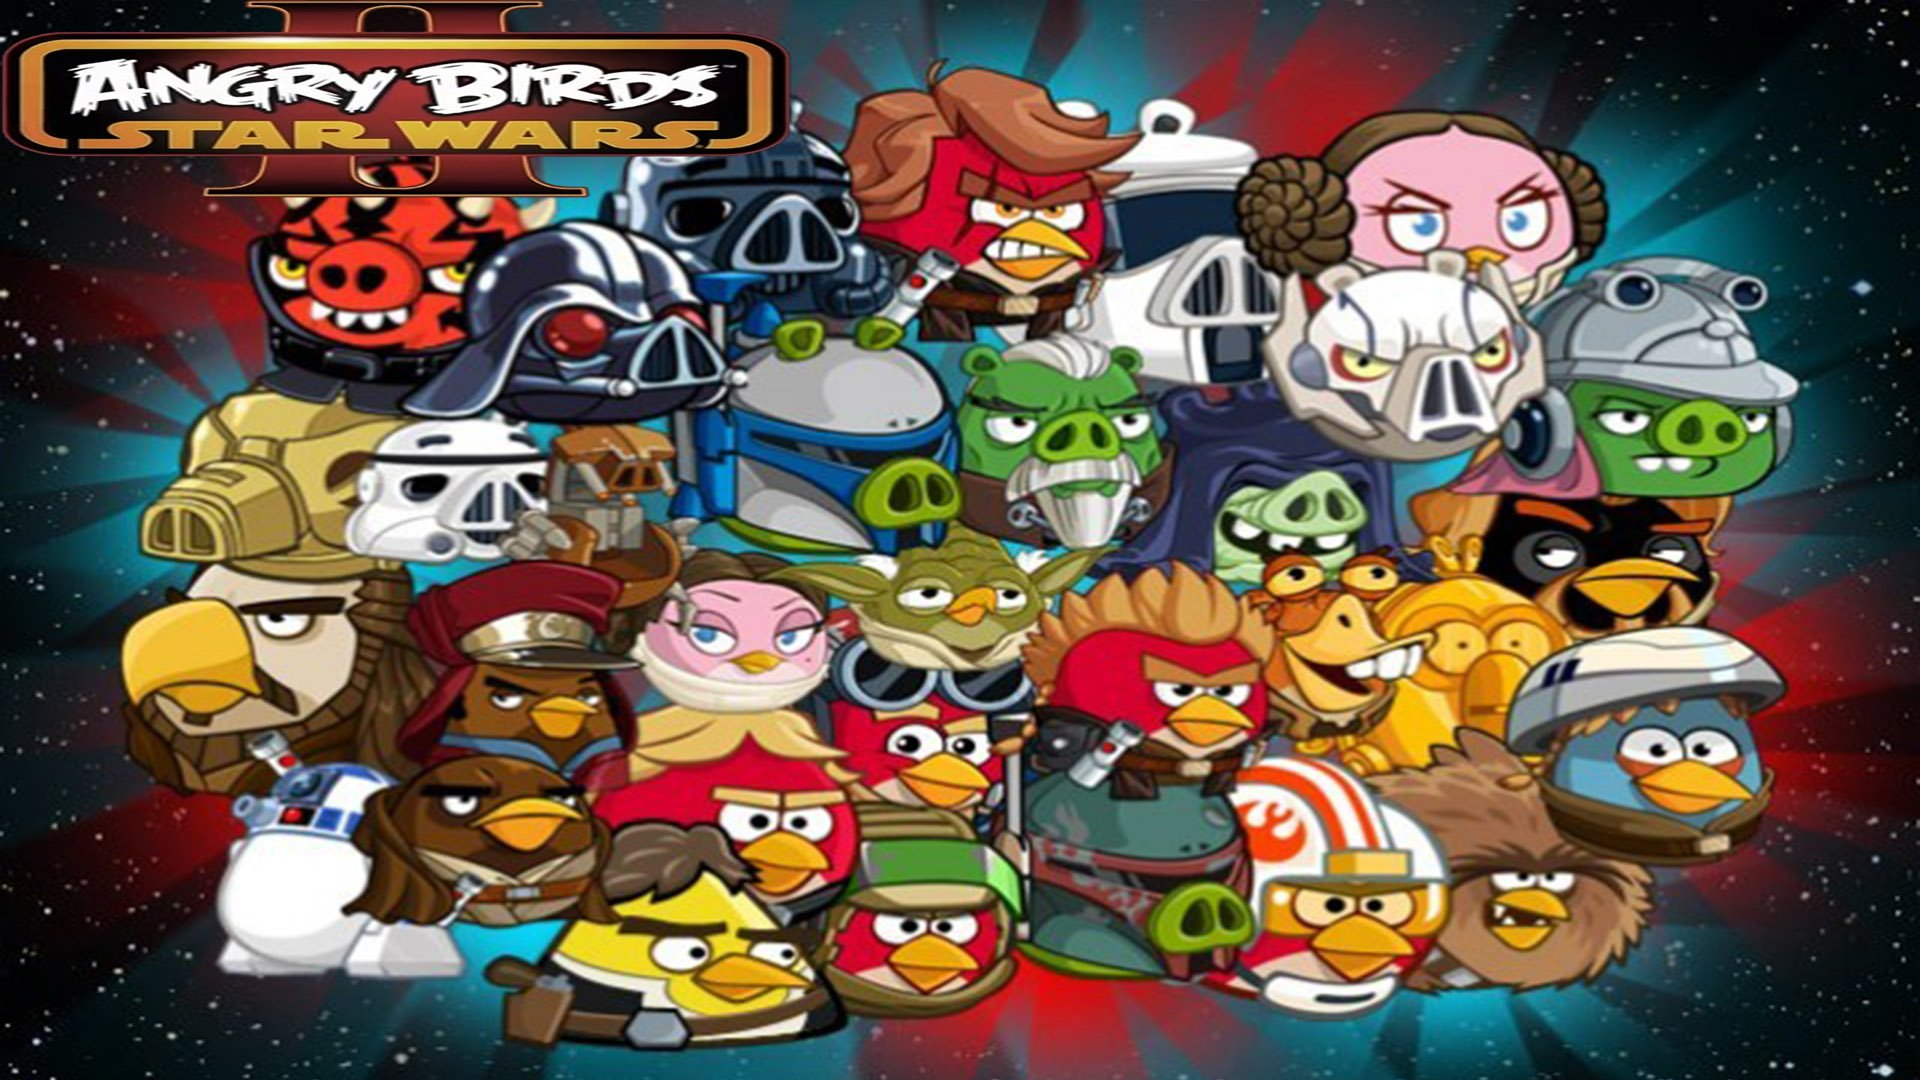 5 Angry Birds Star Wars 2 Hd Wallpapers Background Images